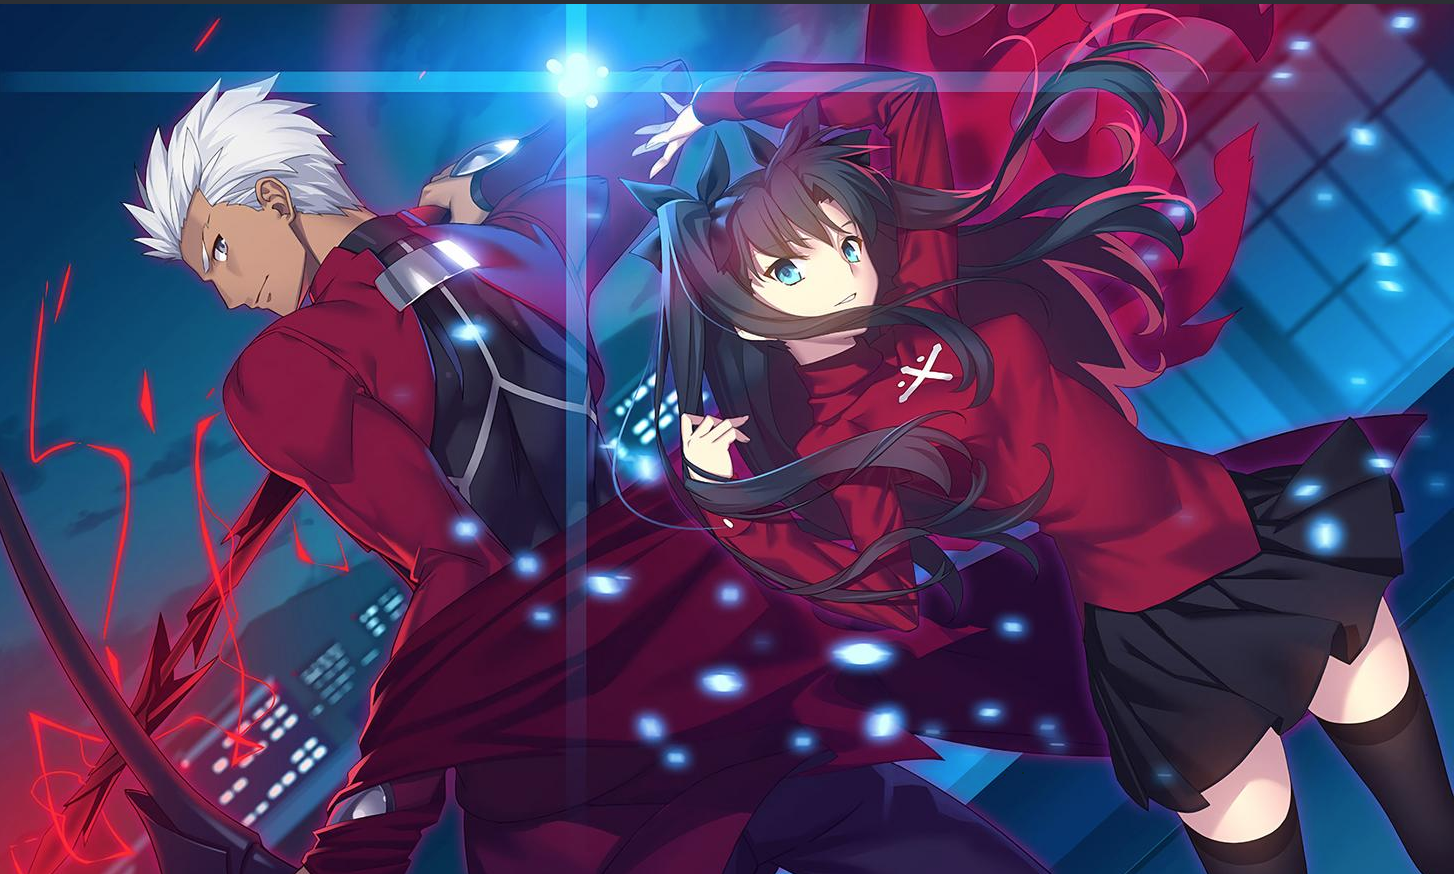 Fate Series In Fate Stay Night Characters Fate Stay Night Fate Stay Night Rin